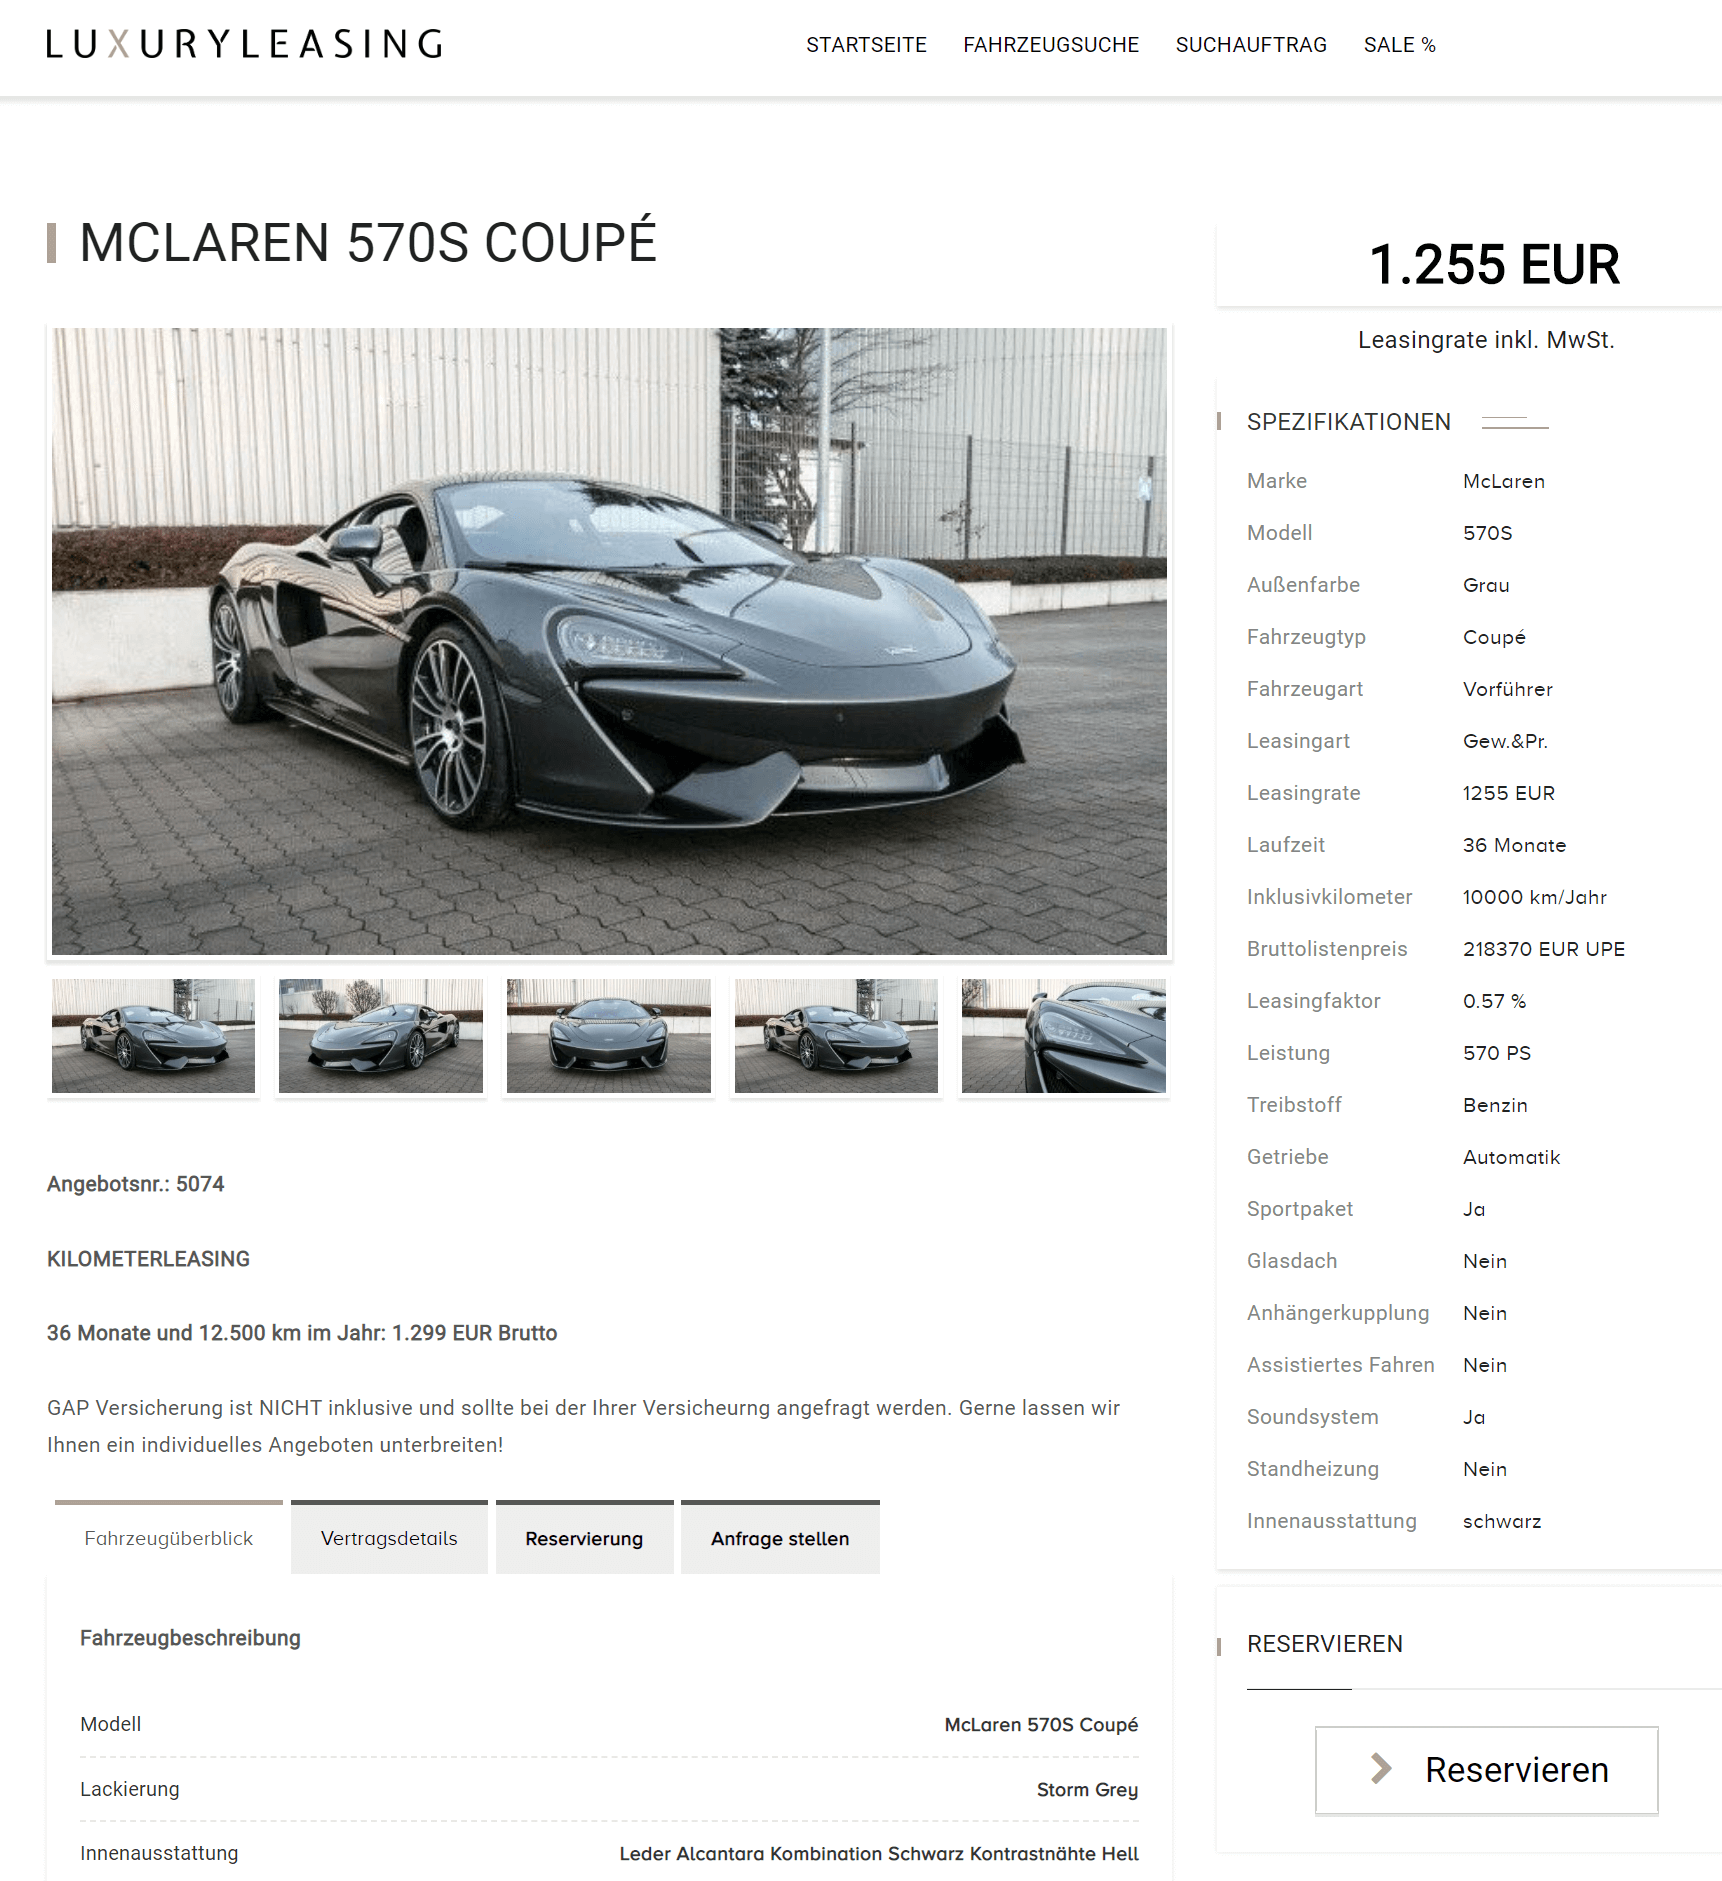 2020 McLaren 570S Coupe Concept and Review